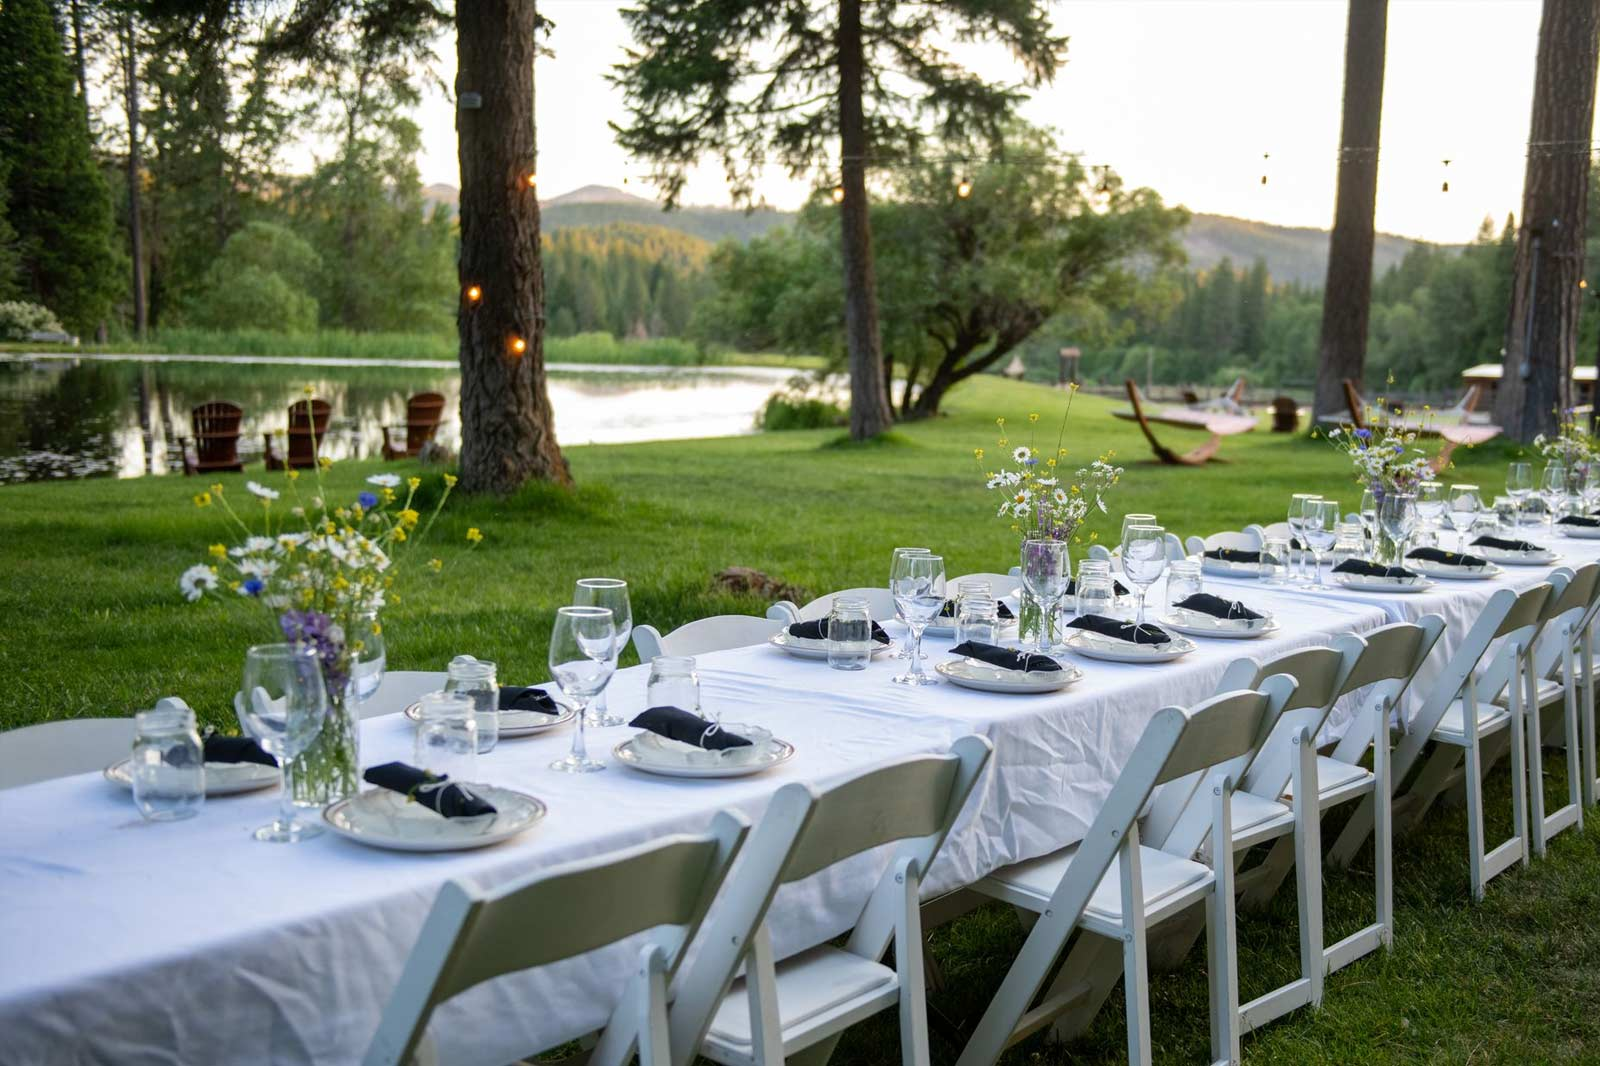 A table set with white linens outside by the Greenhorn pond